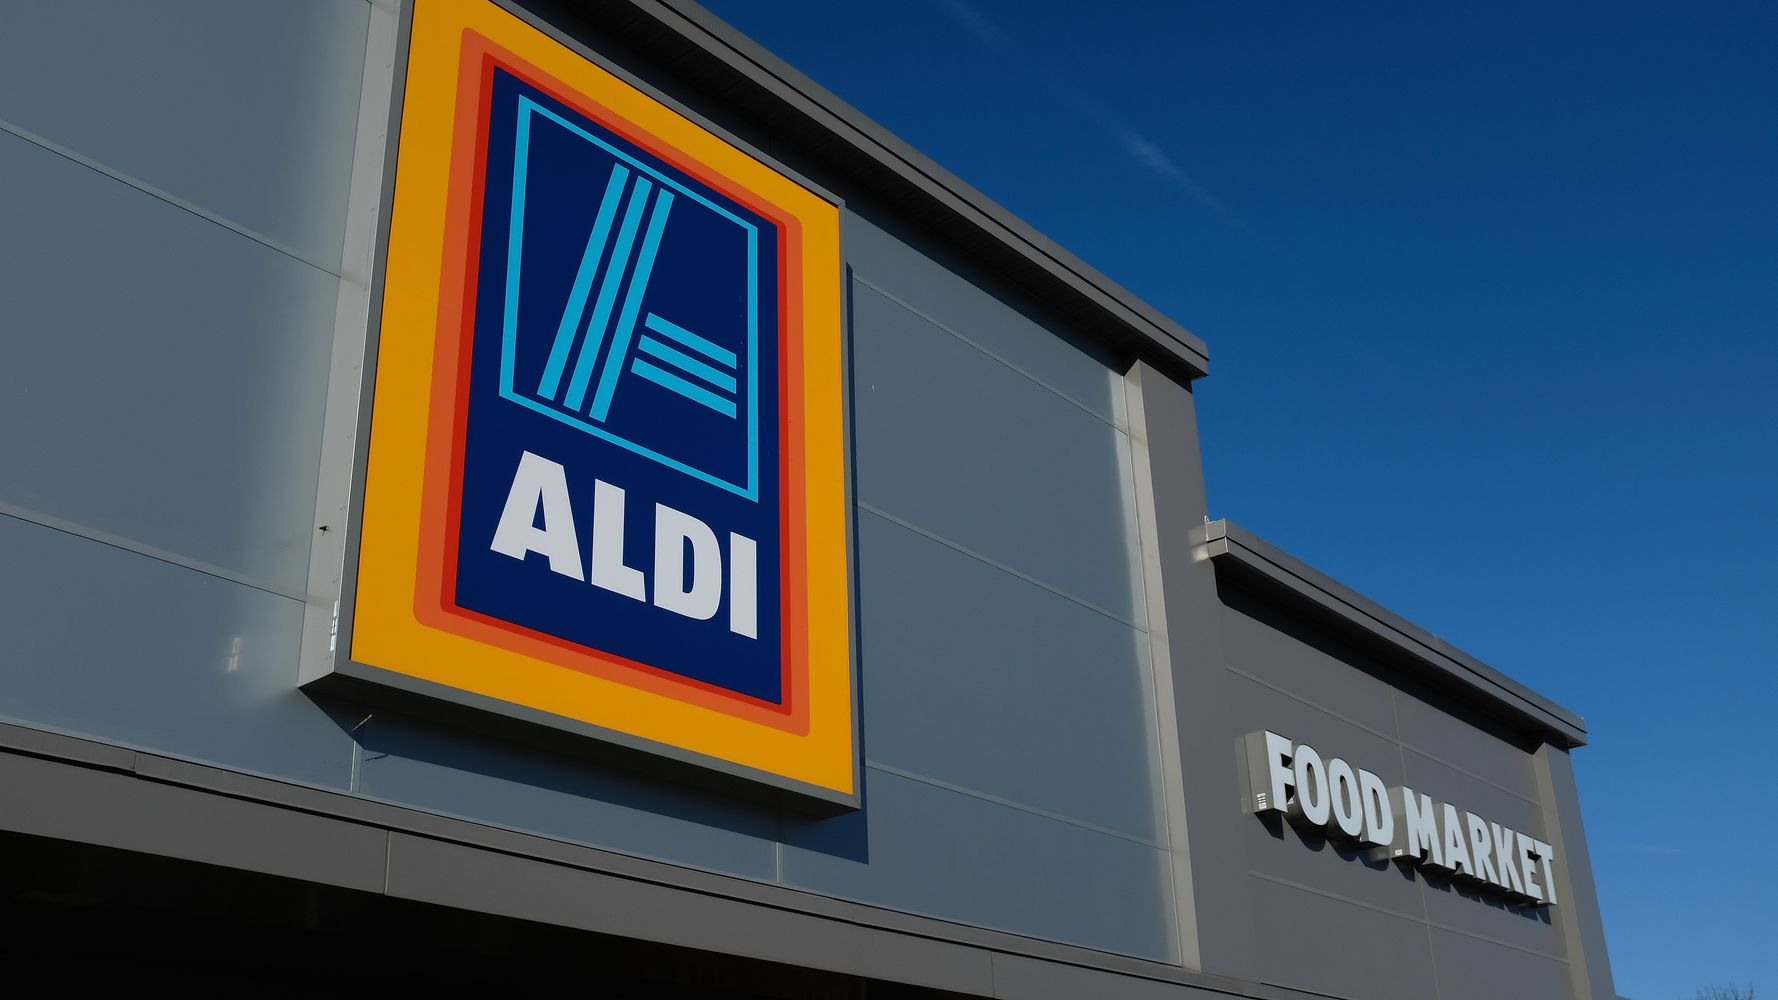 How To Shop At Aldi, The Confusing Budget Grocery Store